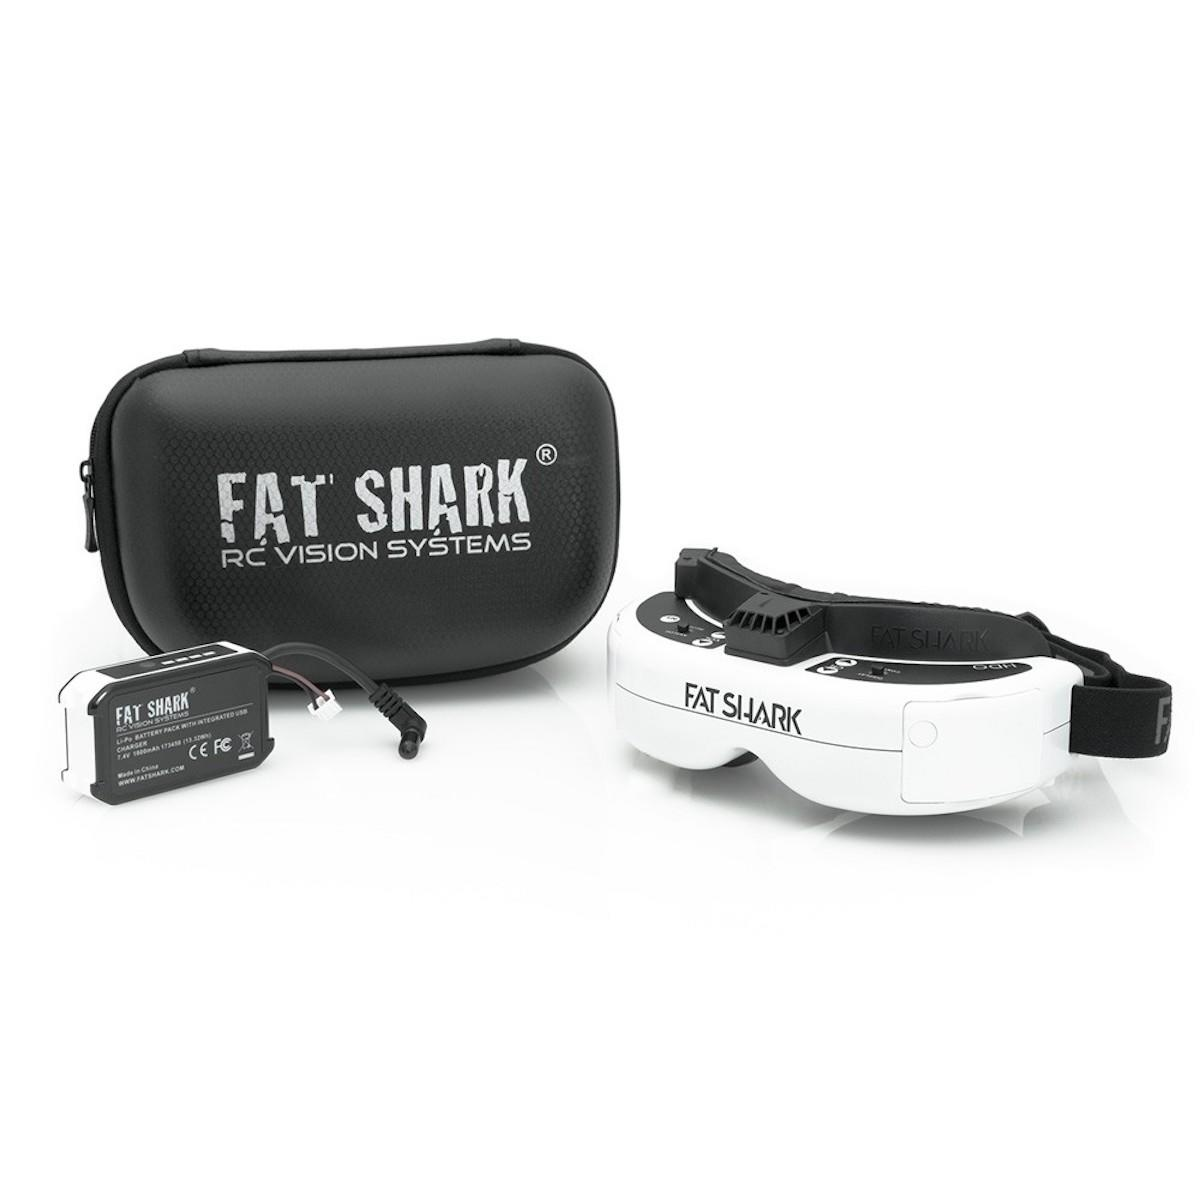 Fatshark Dominator HDO contents kit